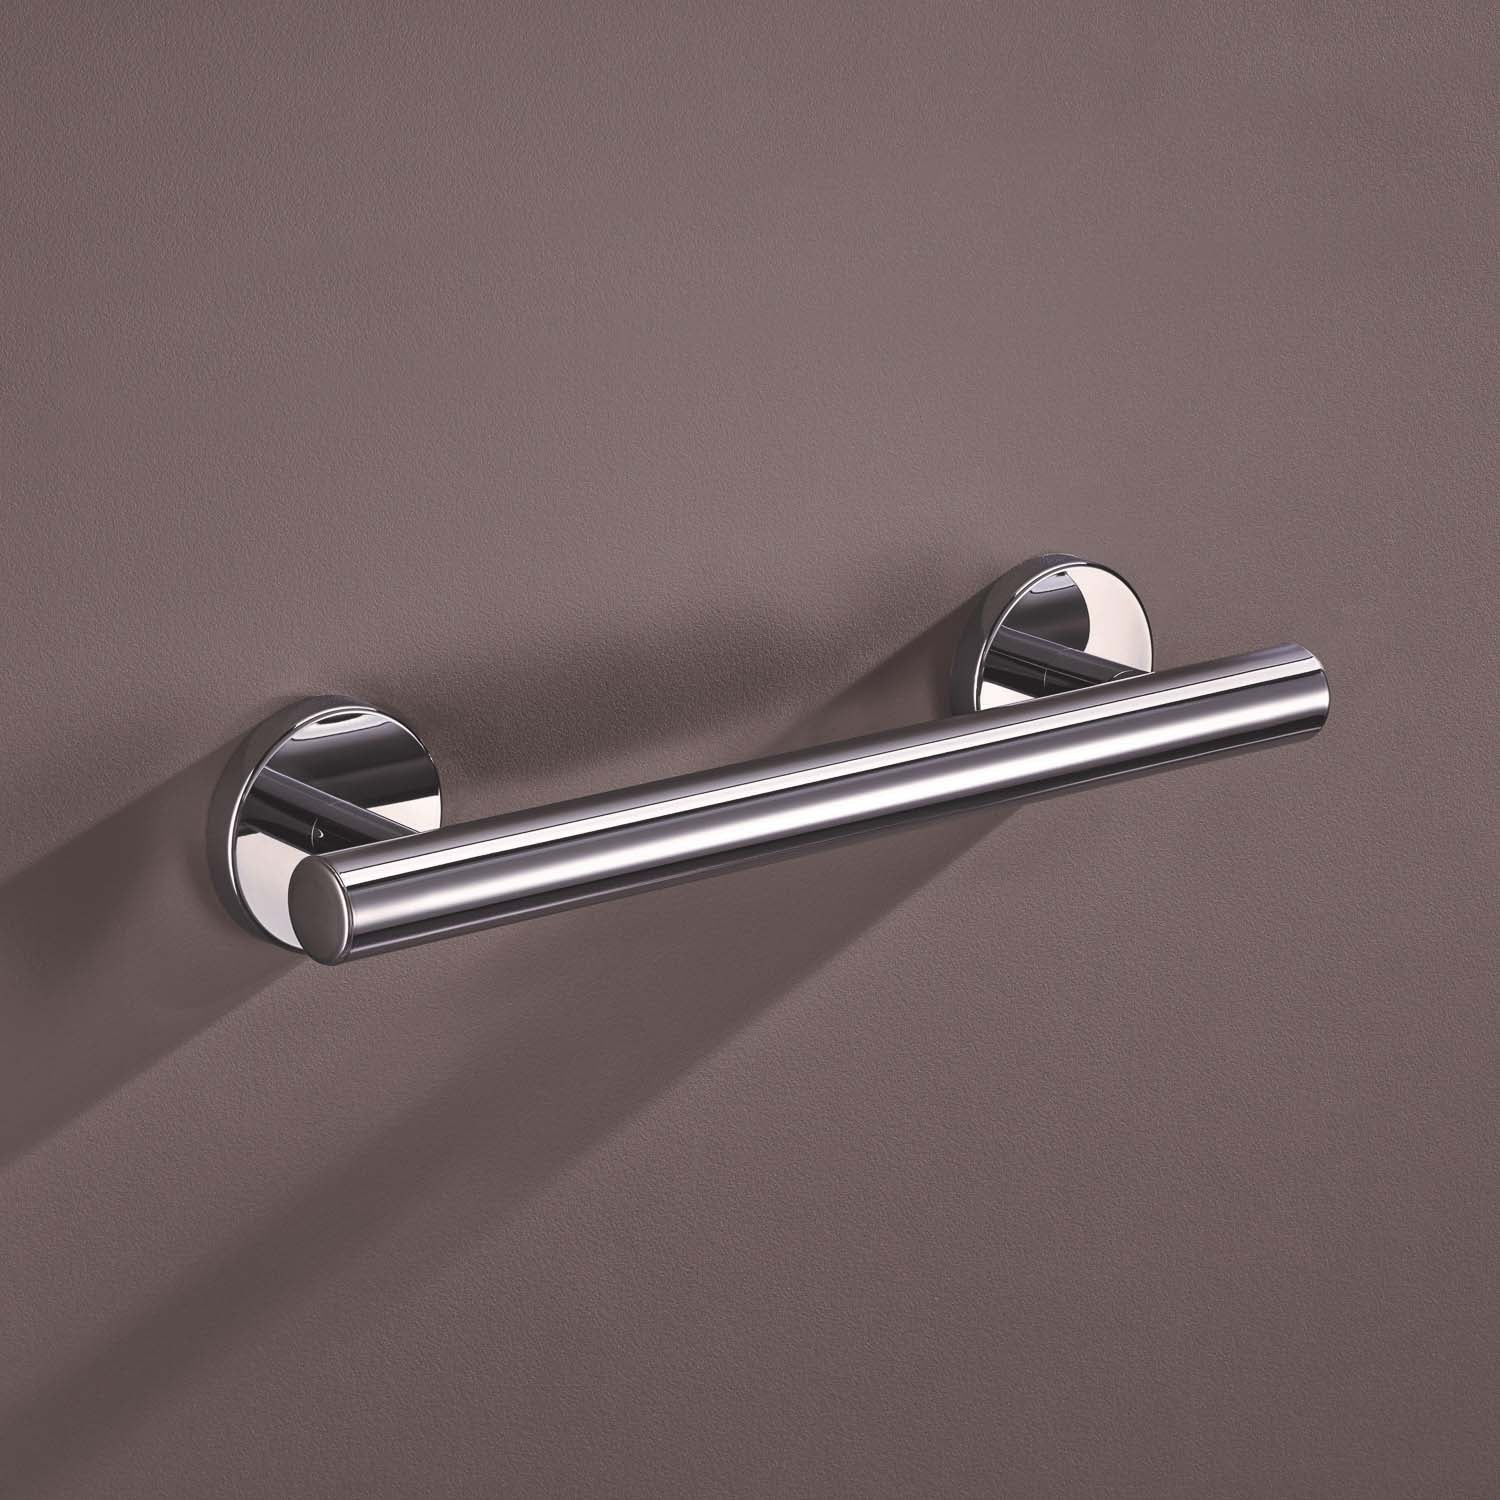 400mm Warm Touch Circula Straight Grab Rail with a chrome look finish lifestyle image